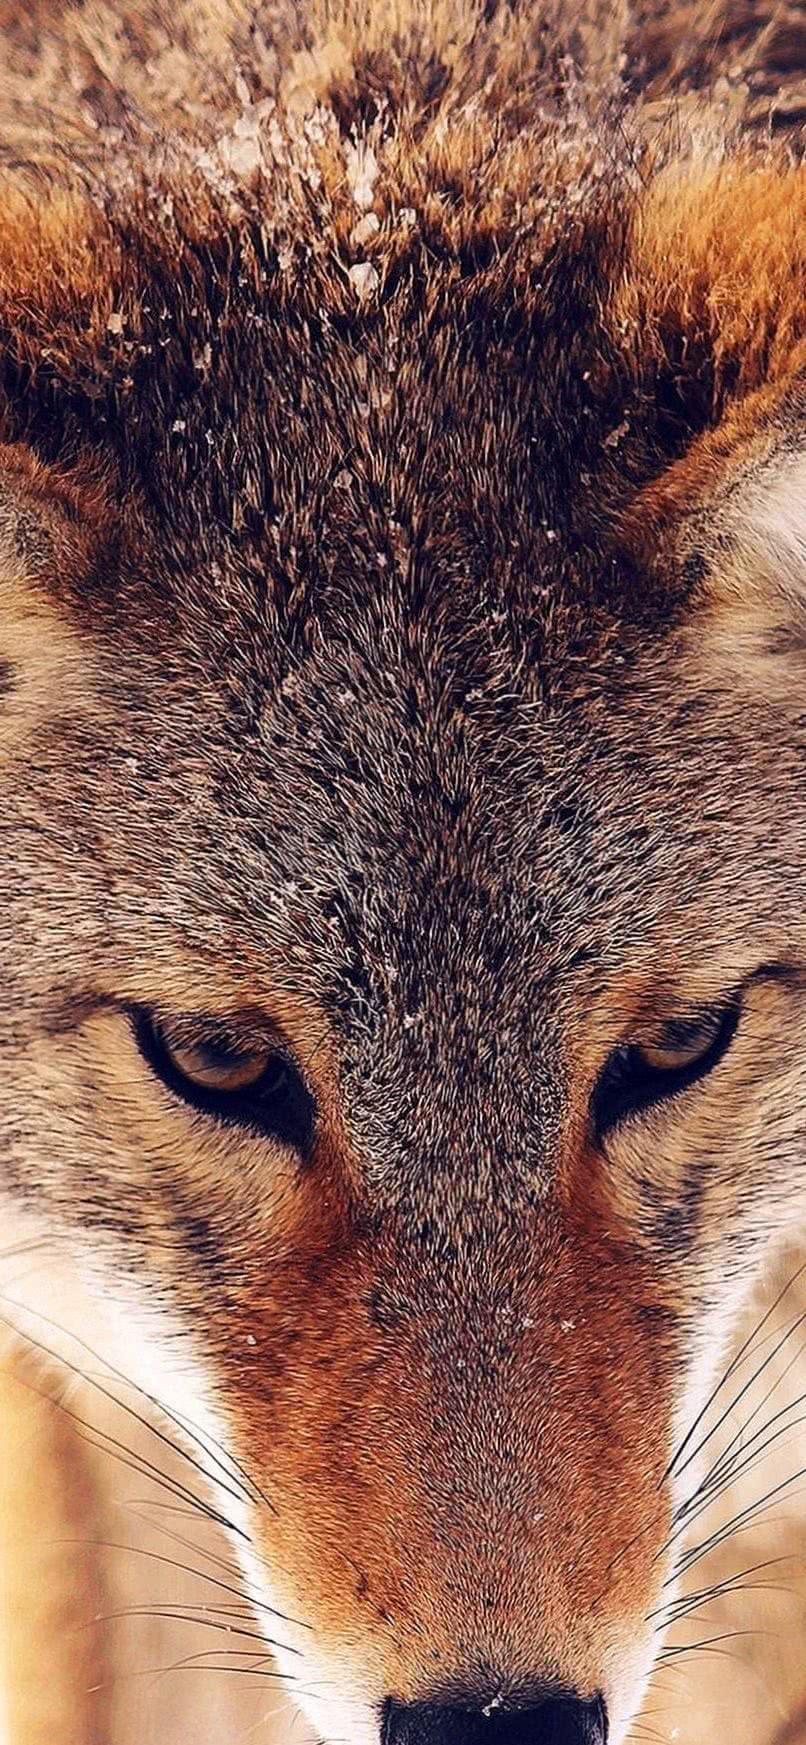 iPhone XS Wolf Wallpaper